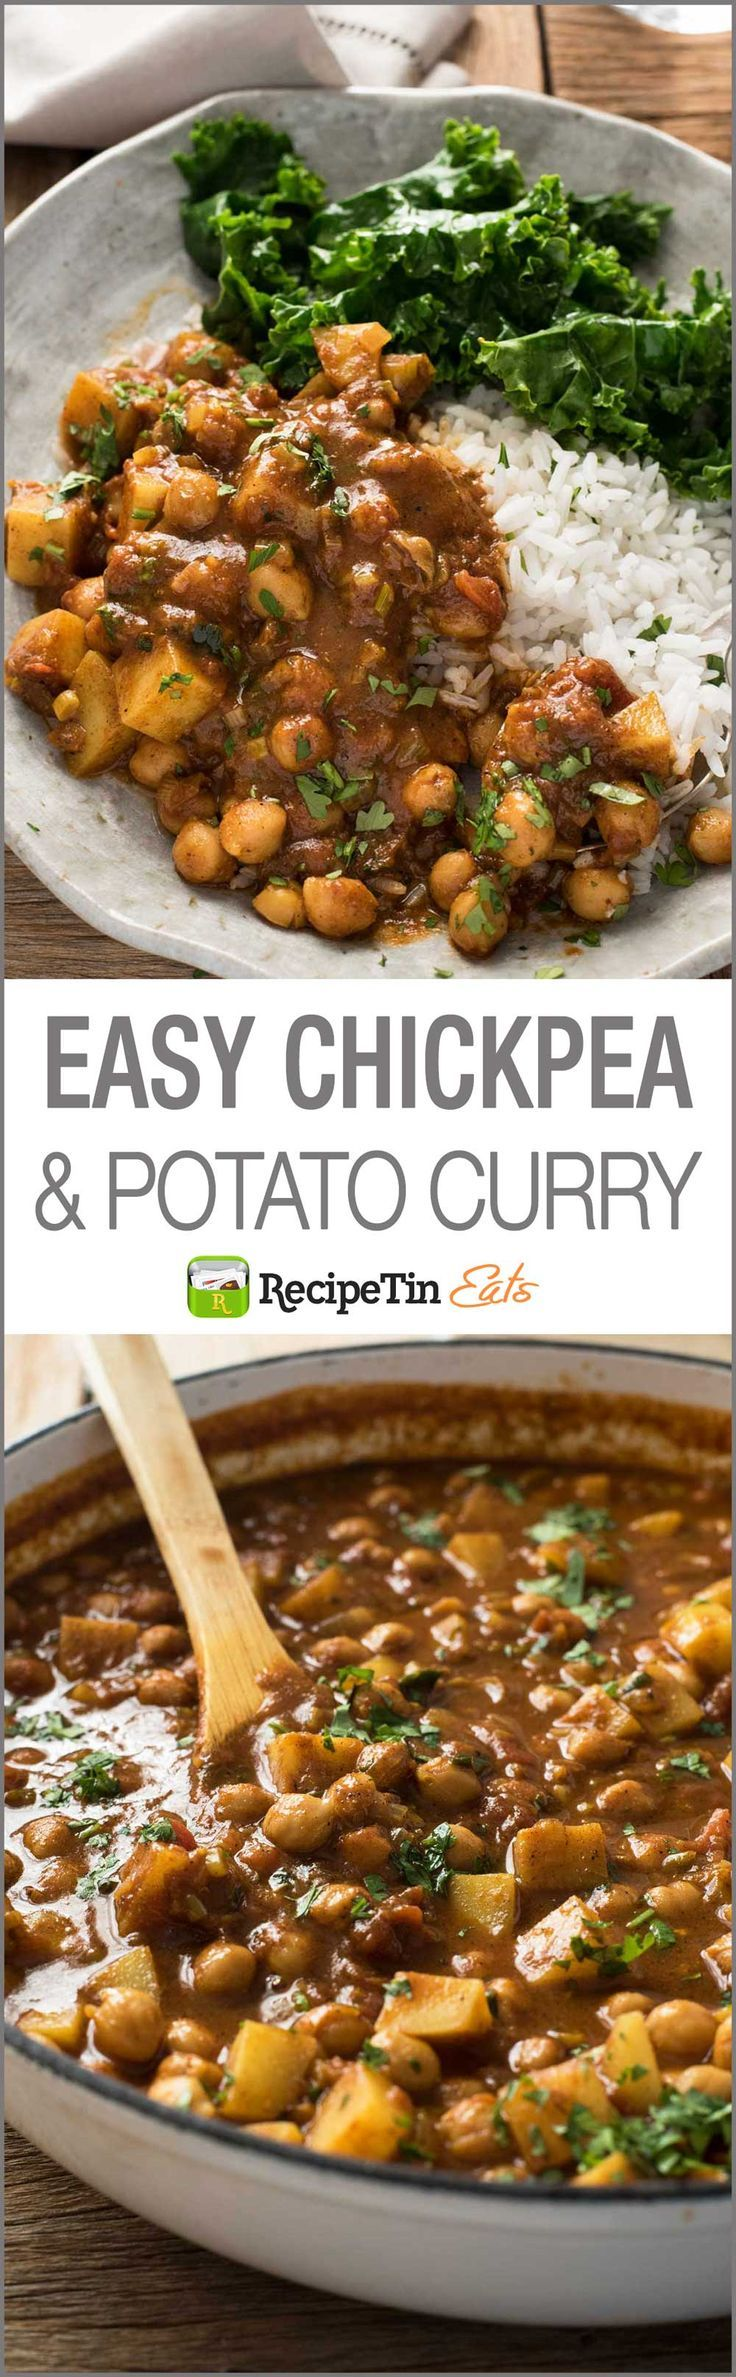 Chickpea Potato Curry - an authentic recipe that's so easy, made from scratch, no hunting down unusual ingredients. Incredible flavour! #trinidad #caribbean: